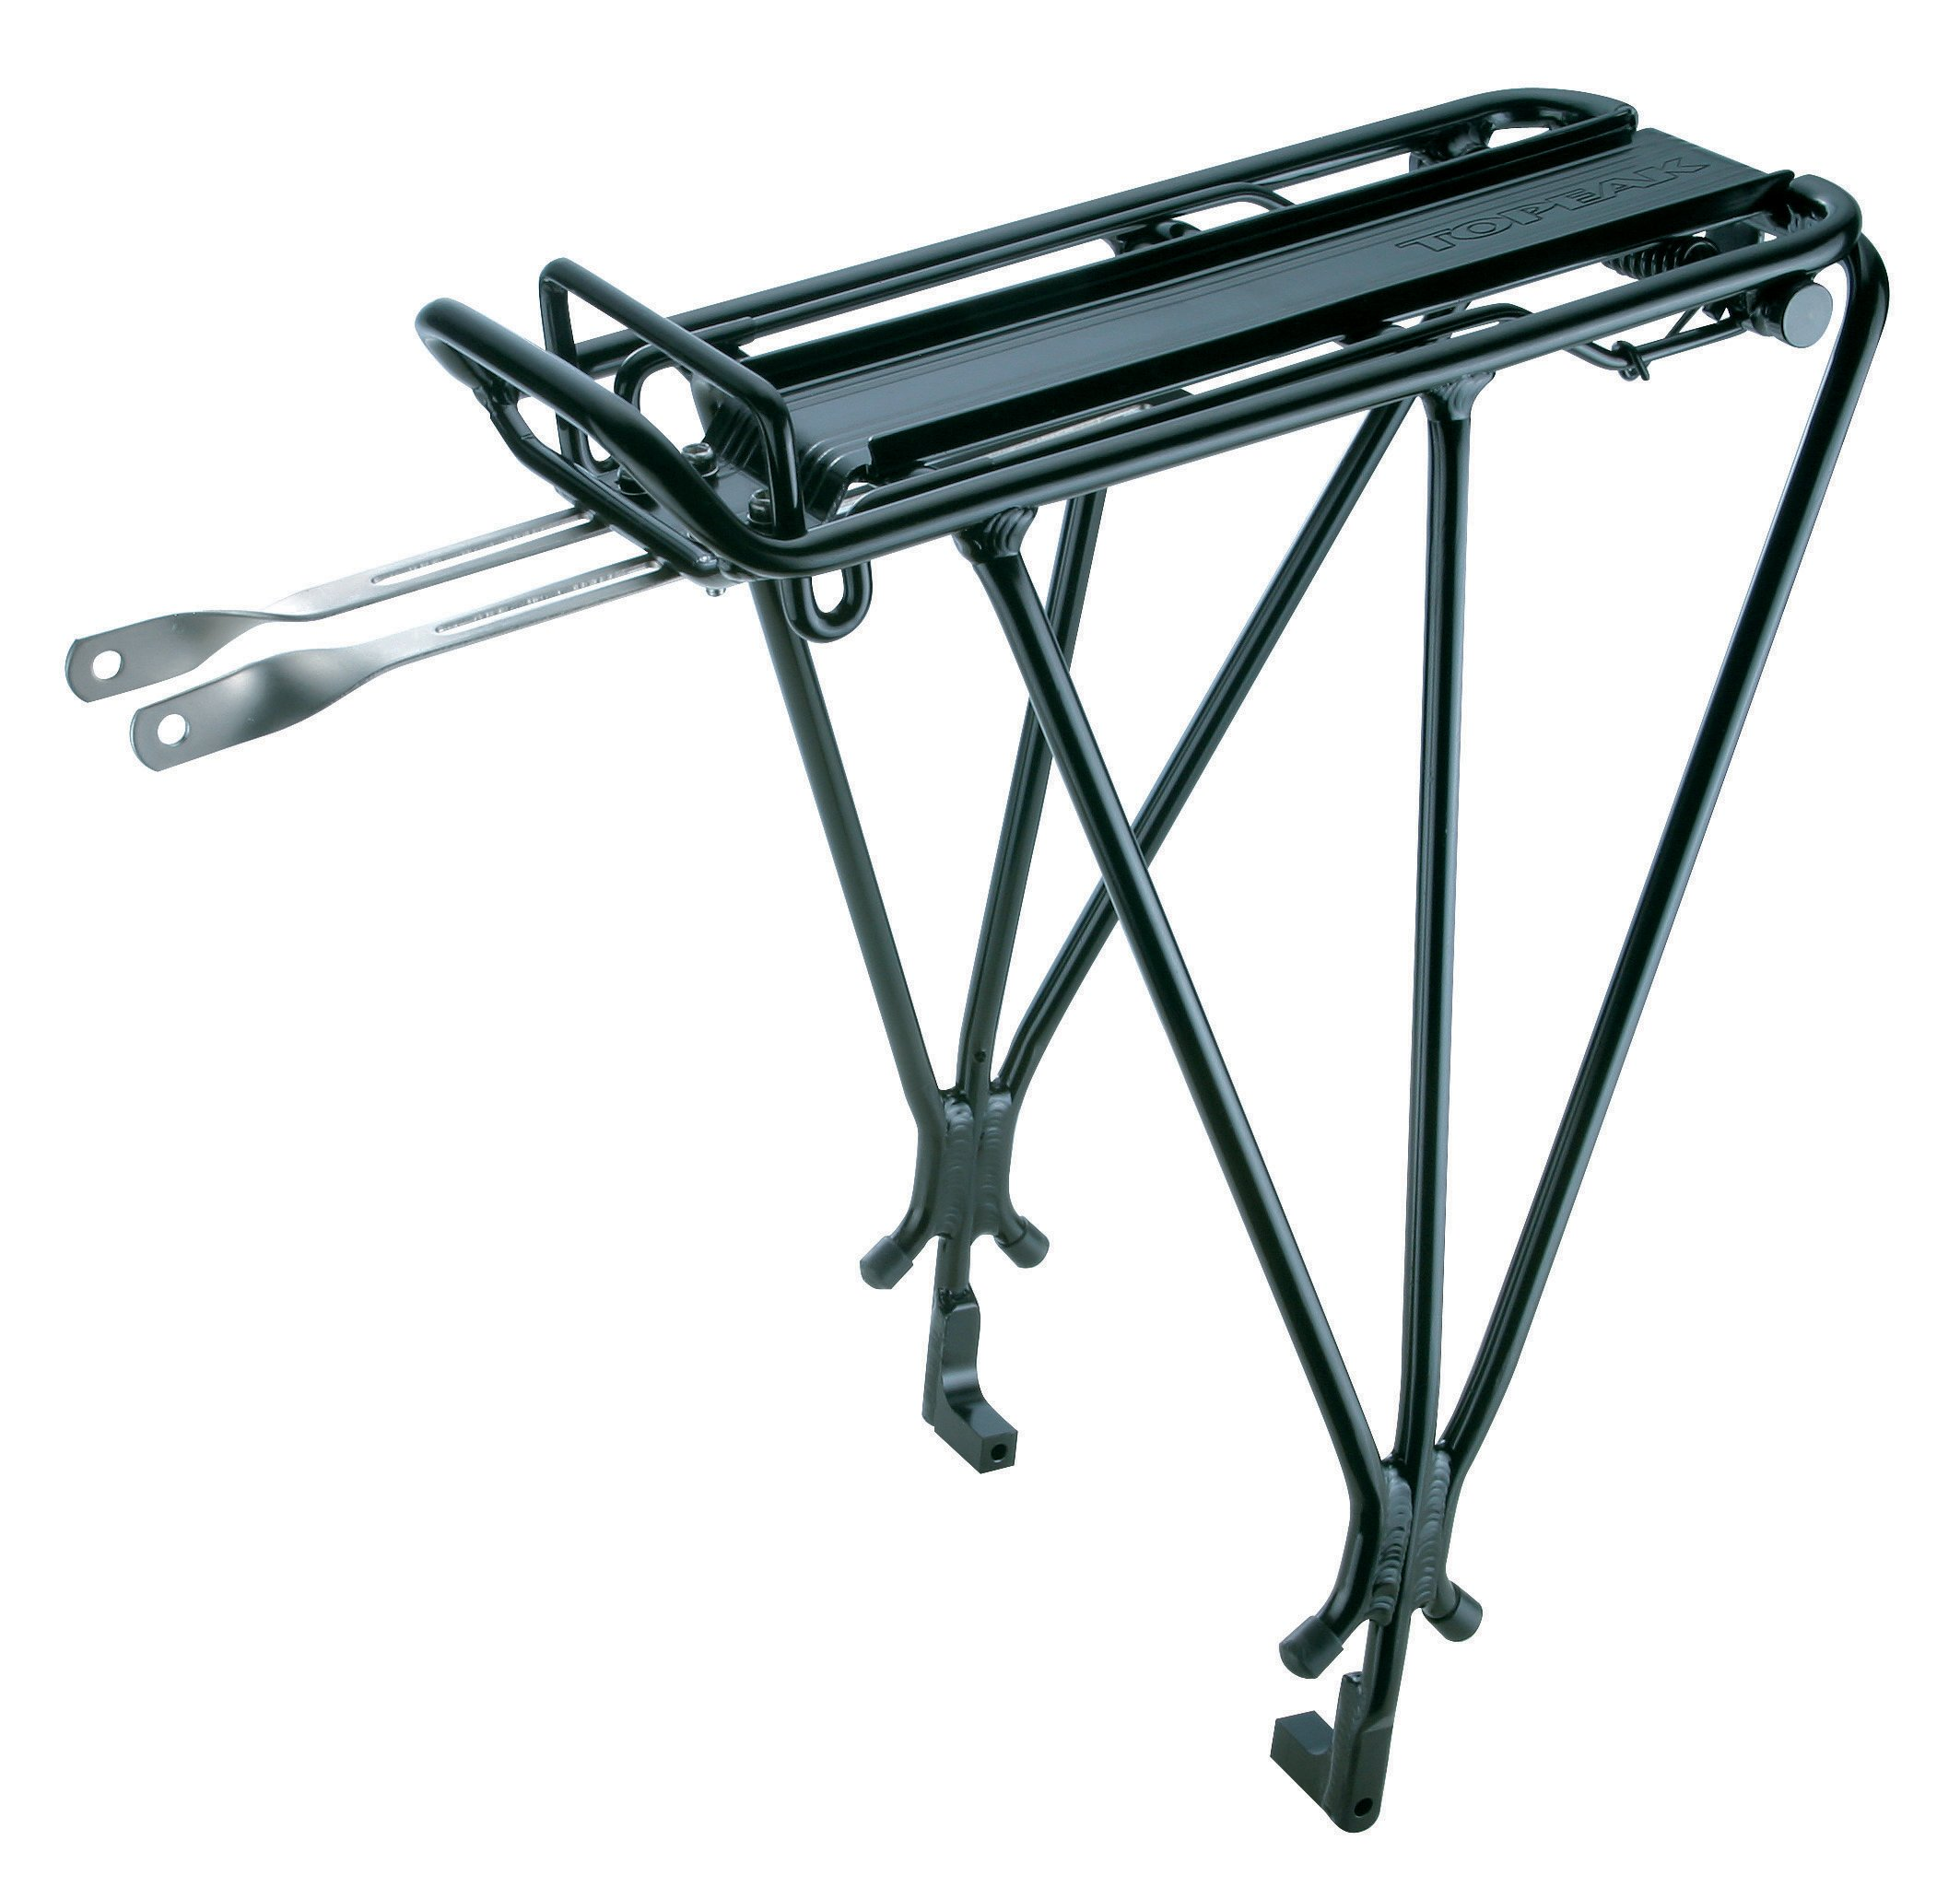 Topeak Explorer Bicycle Rack with Disc Brake Mounts and Spring by Topeak (Image #1)